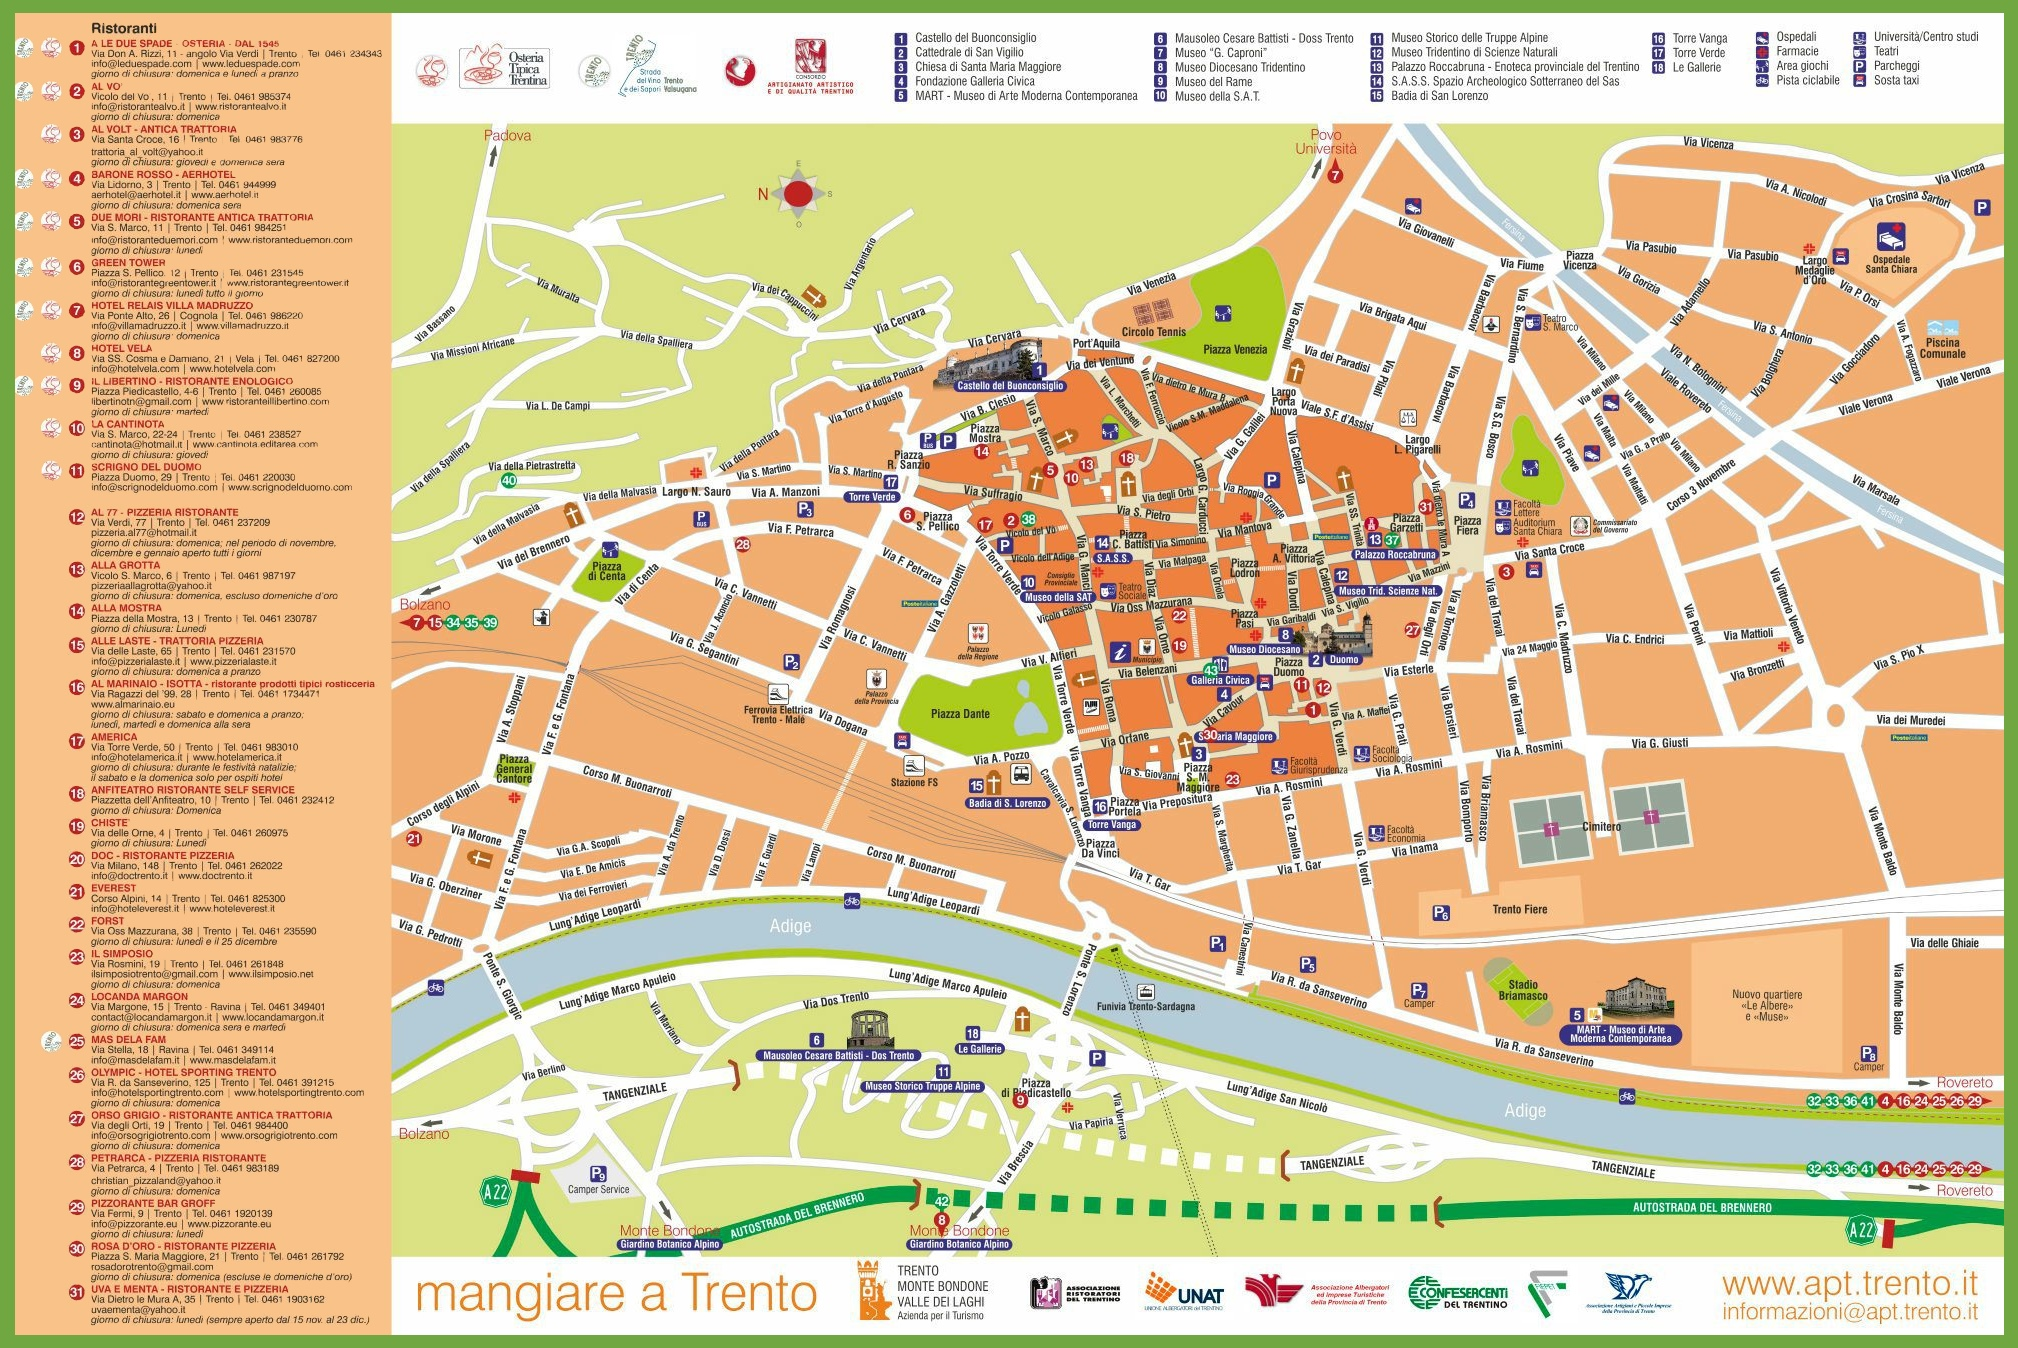 los angeles tourist map with Trento Tourist Map on Sri Lanka also Freiburg Tourist Attractions Map also Verona Tourist Attractions Map besides Trento Tourist Map together with Melbourne Zoo Map.